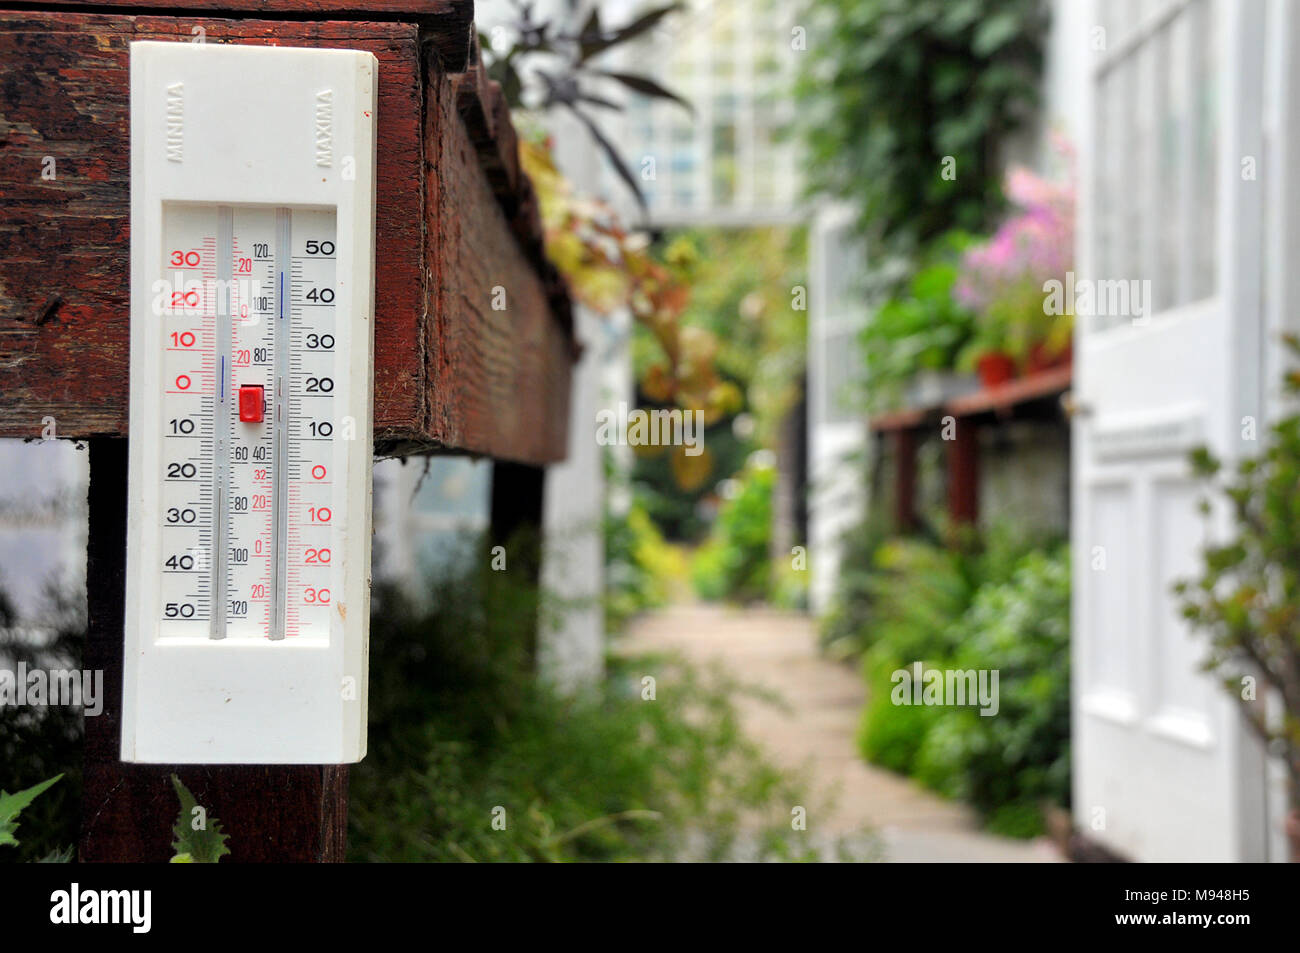 A greenhouse thermometer shows the temperature within a large garden greenhouse. - Stock Image